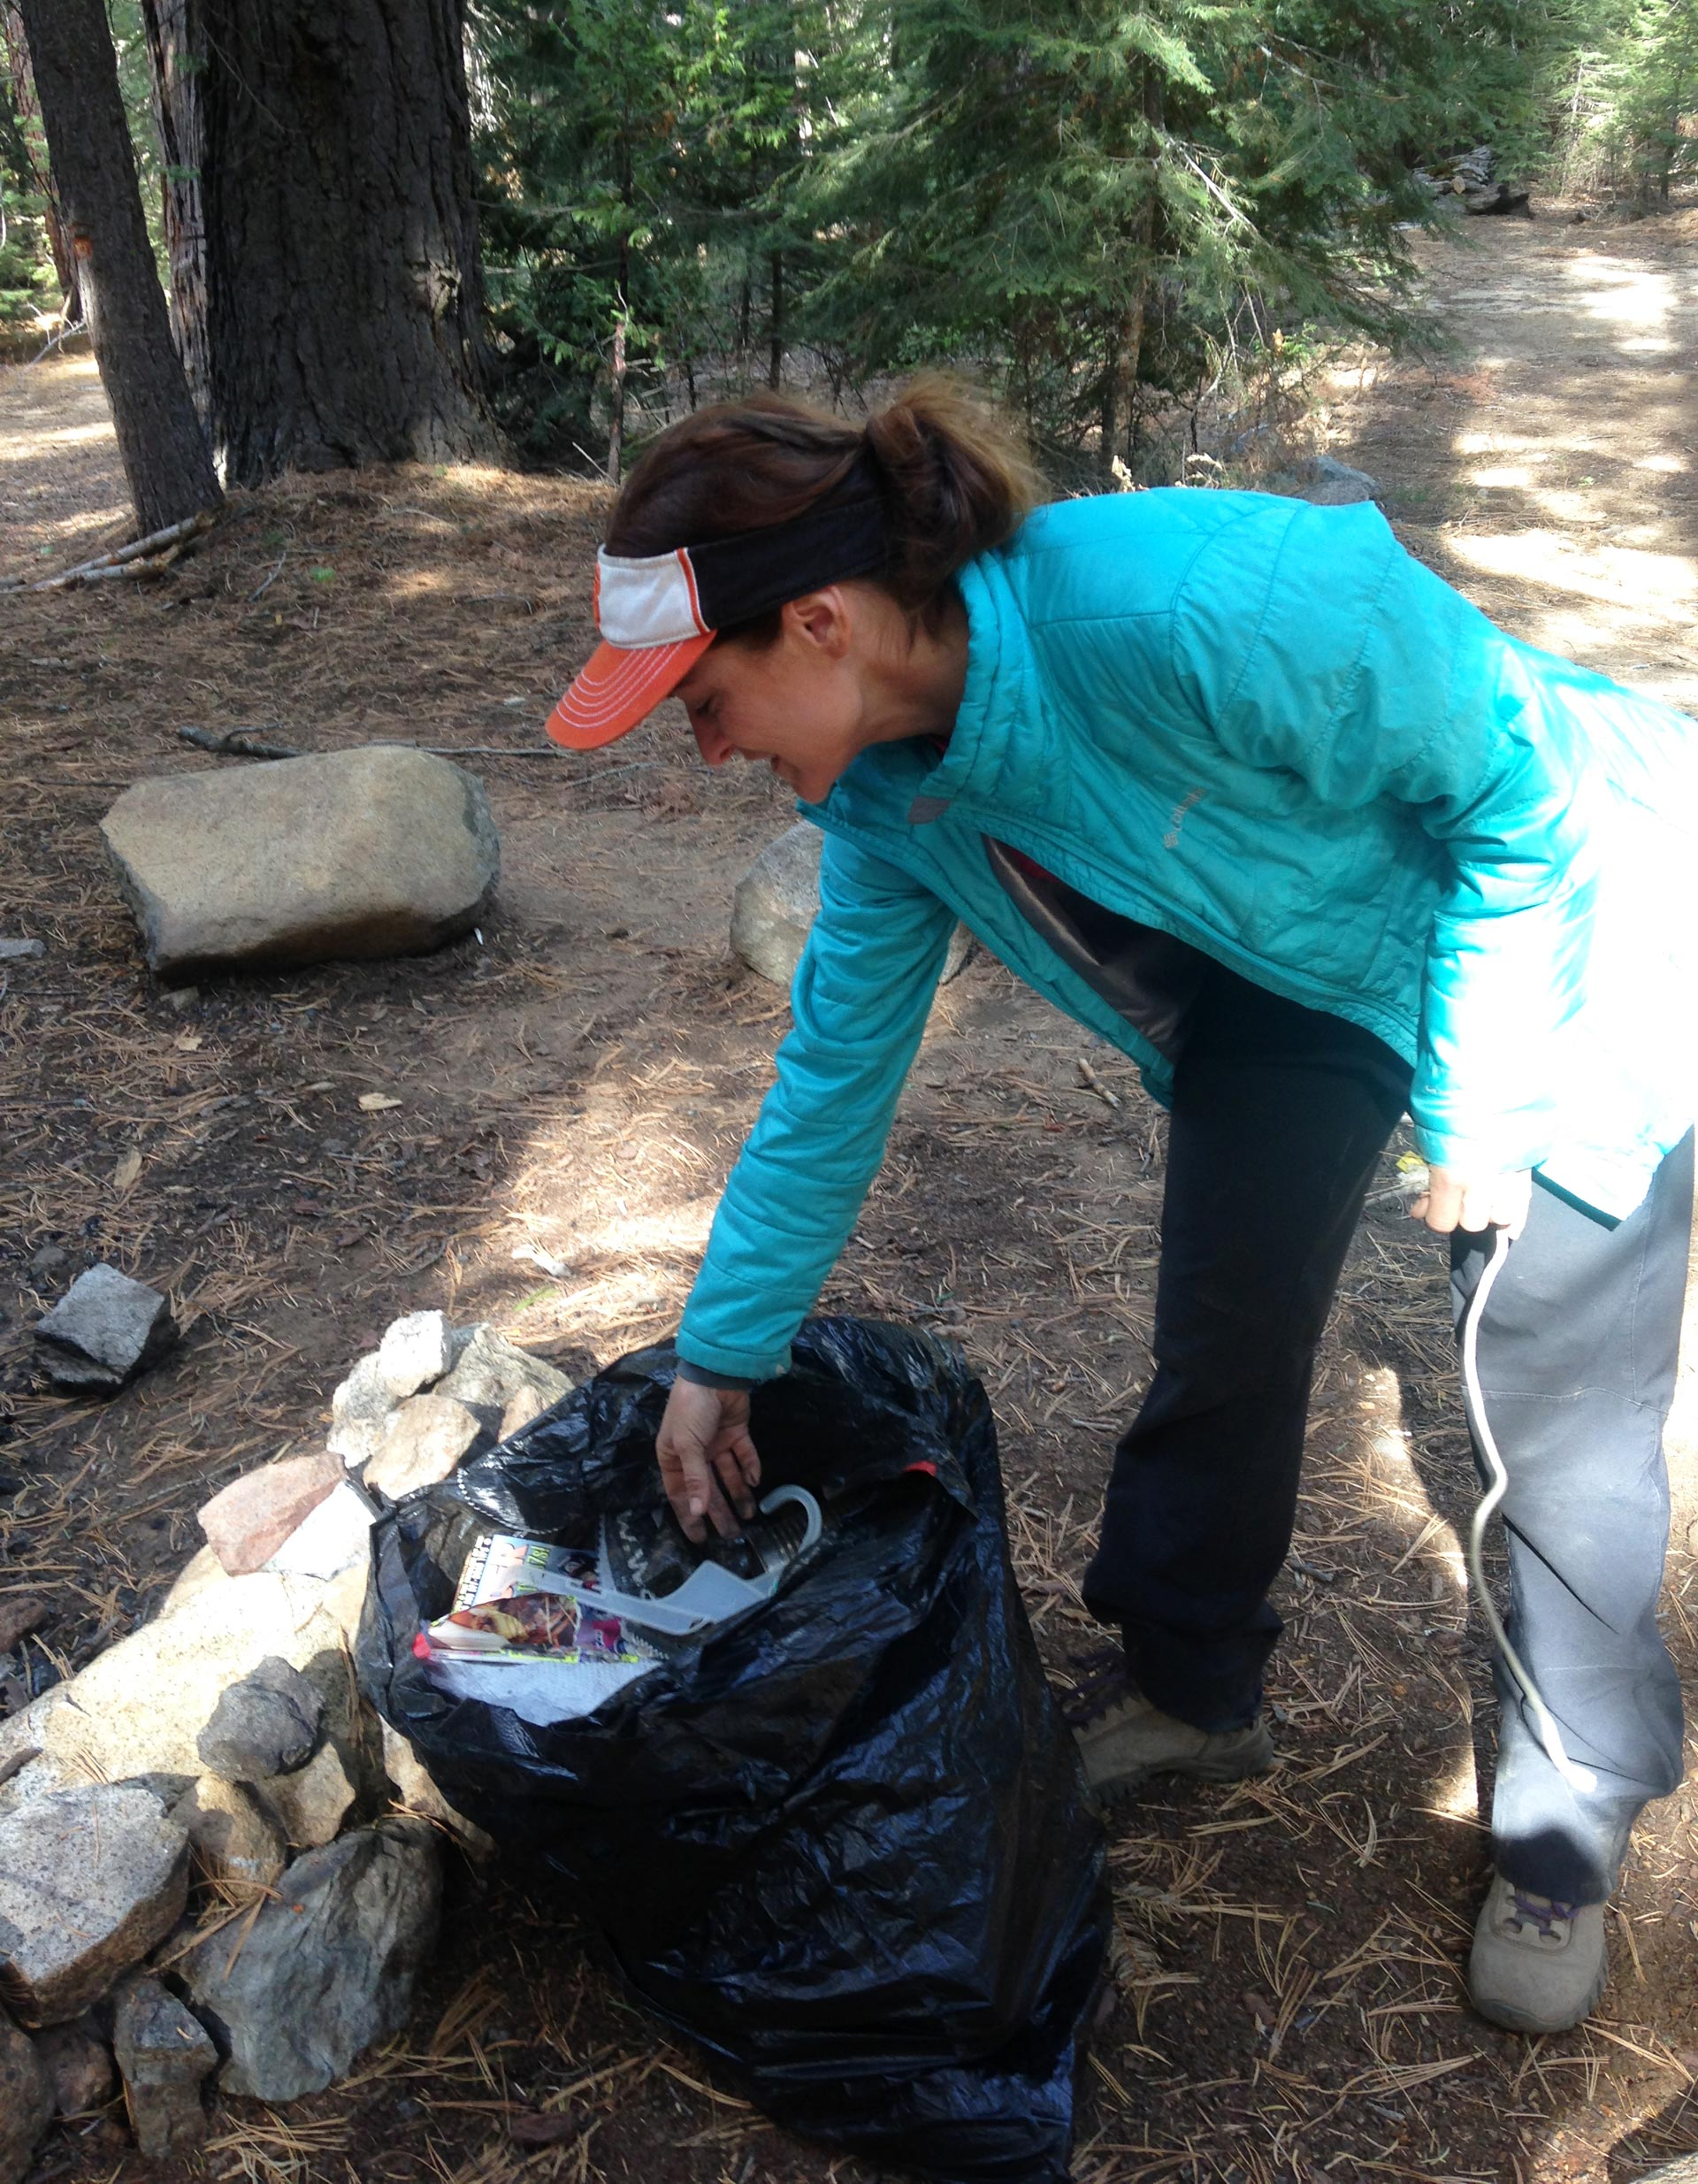 Deanna Lynn Wulff always brings trash bags to the Sierra National Forest so she can pick up litter.